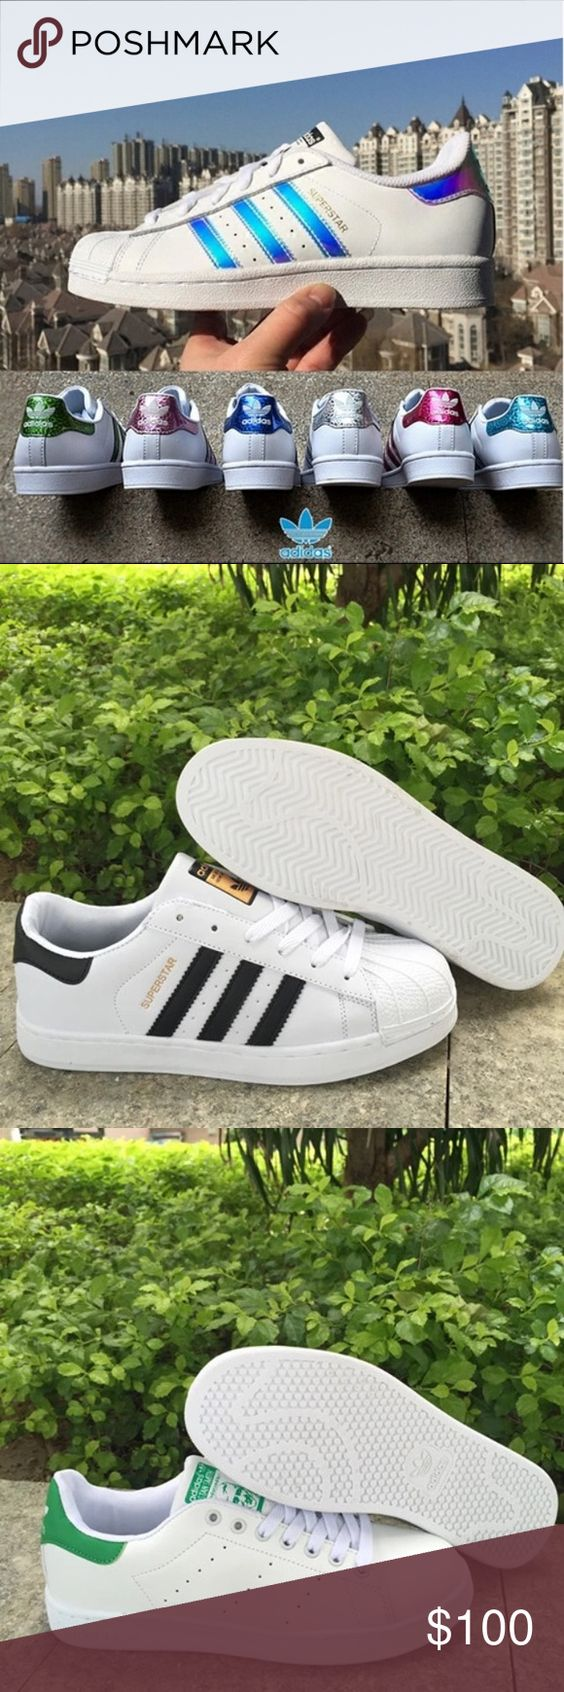 Adidas Superstar I have all sizes and all types available. Price is ALWAYS negotiable Adidas Shoes Athletic Shoes